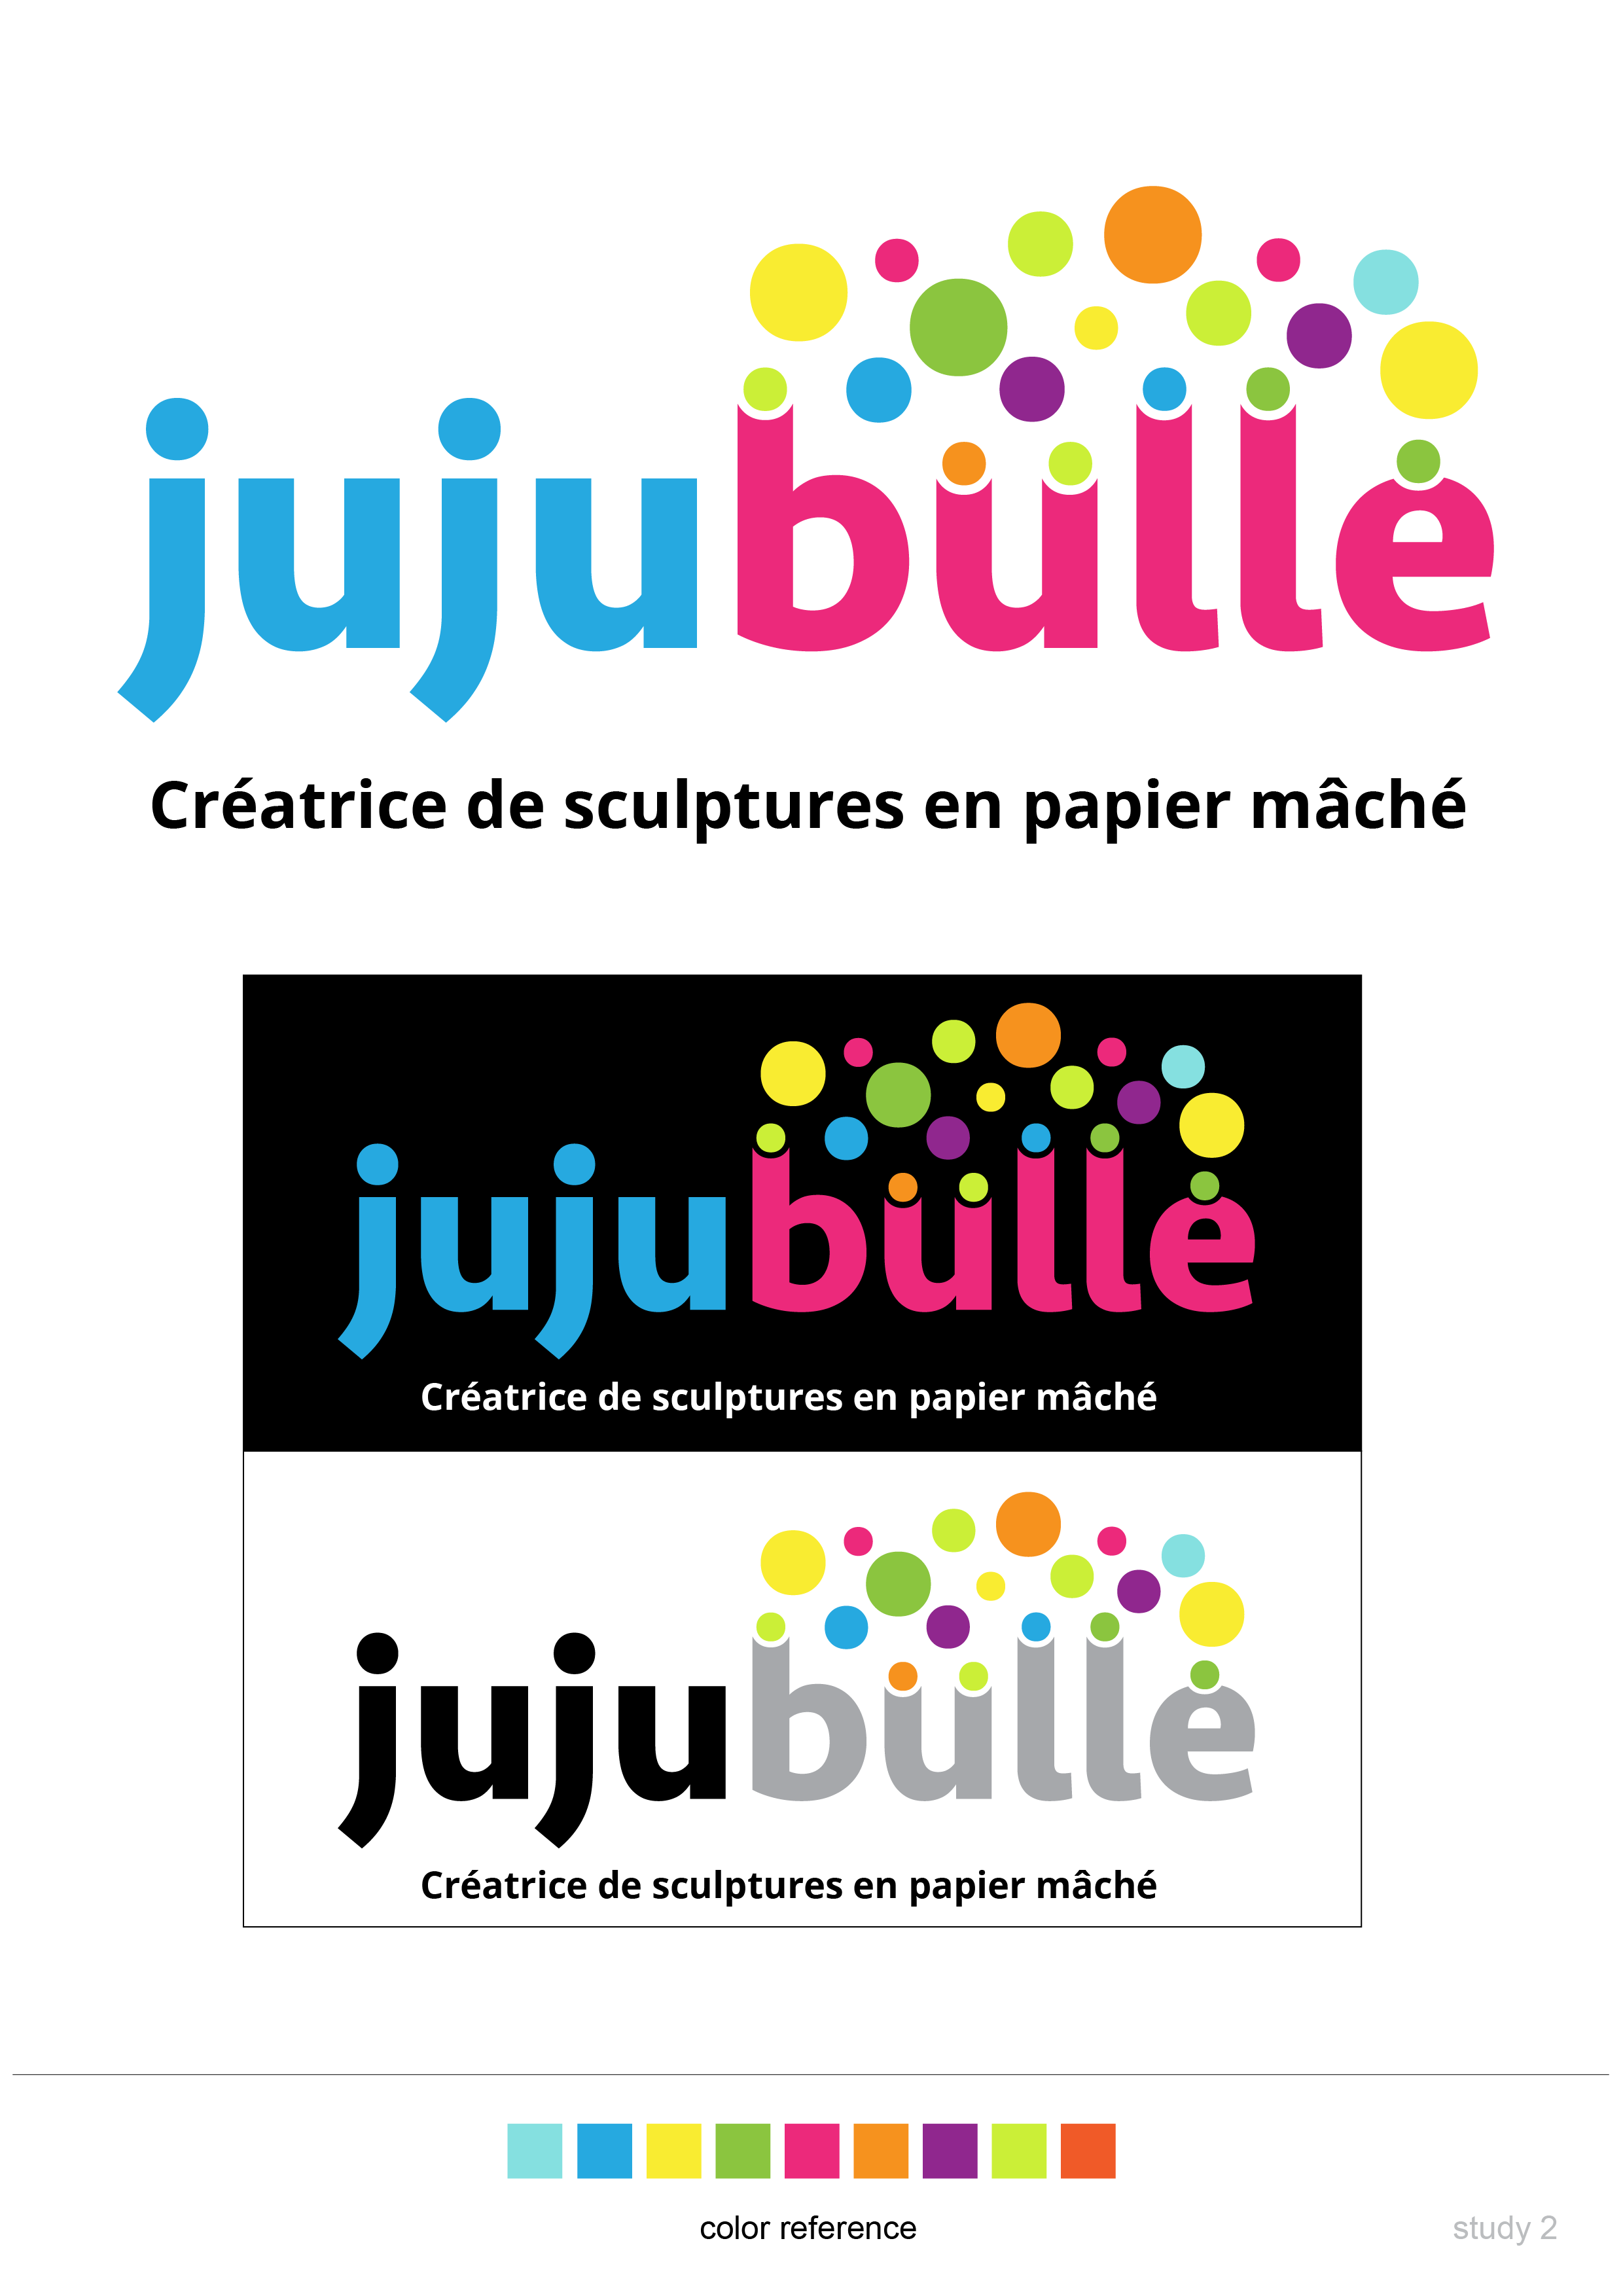 Jujubulle logo study2.png